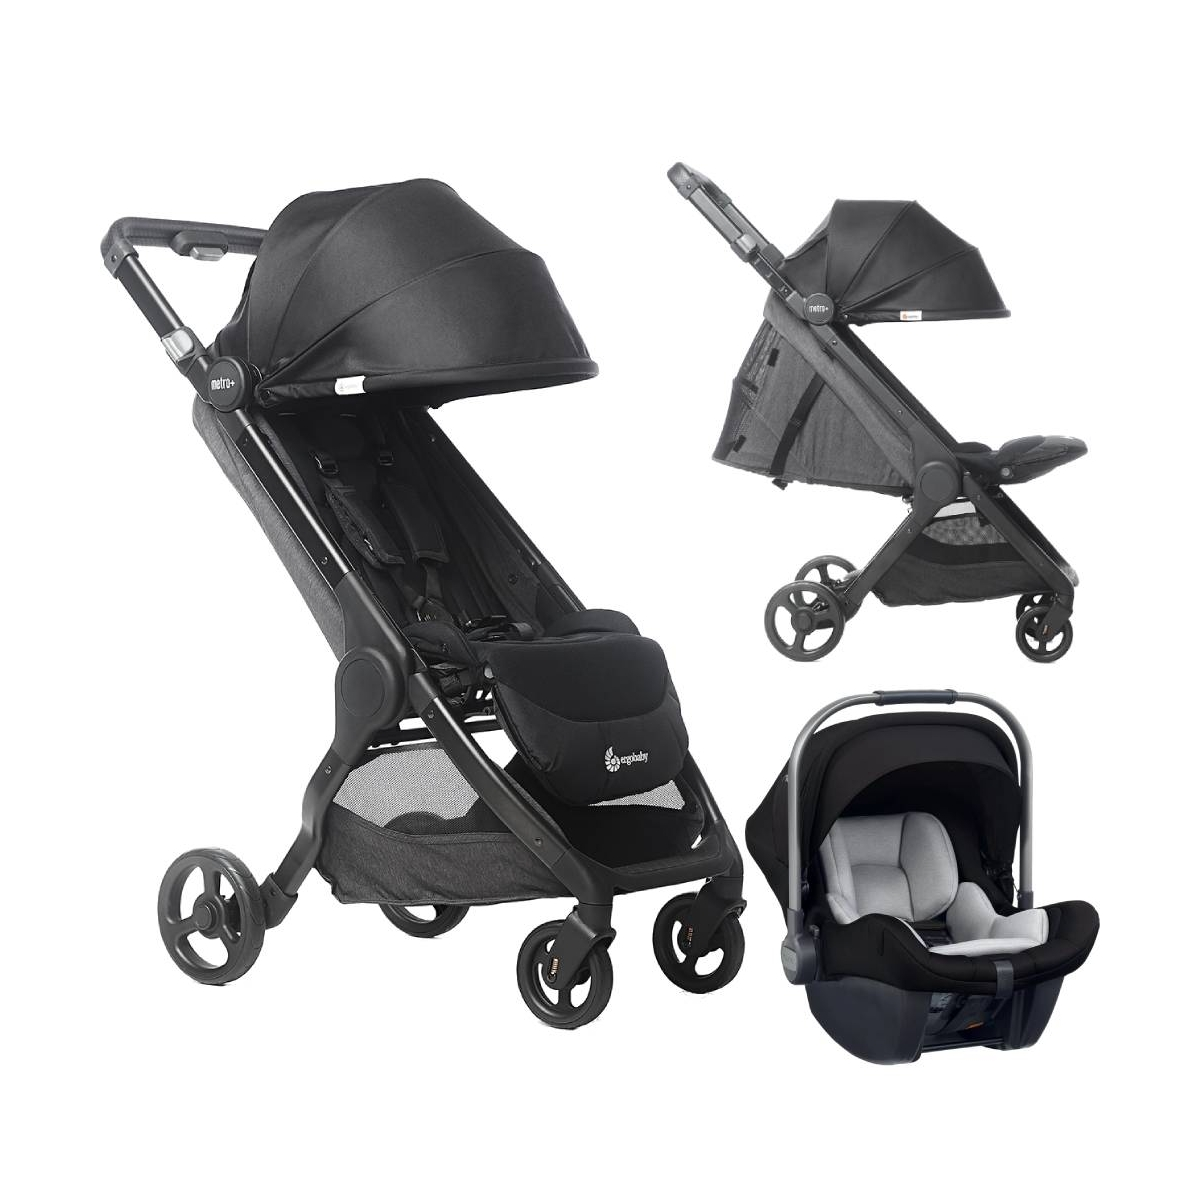 Ergobaby 3in1 Metro+ Compact City Travel System-Black (2021)